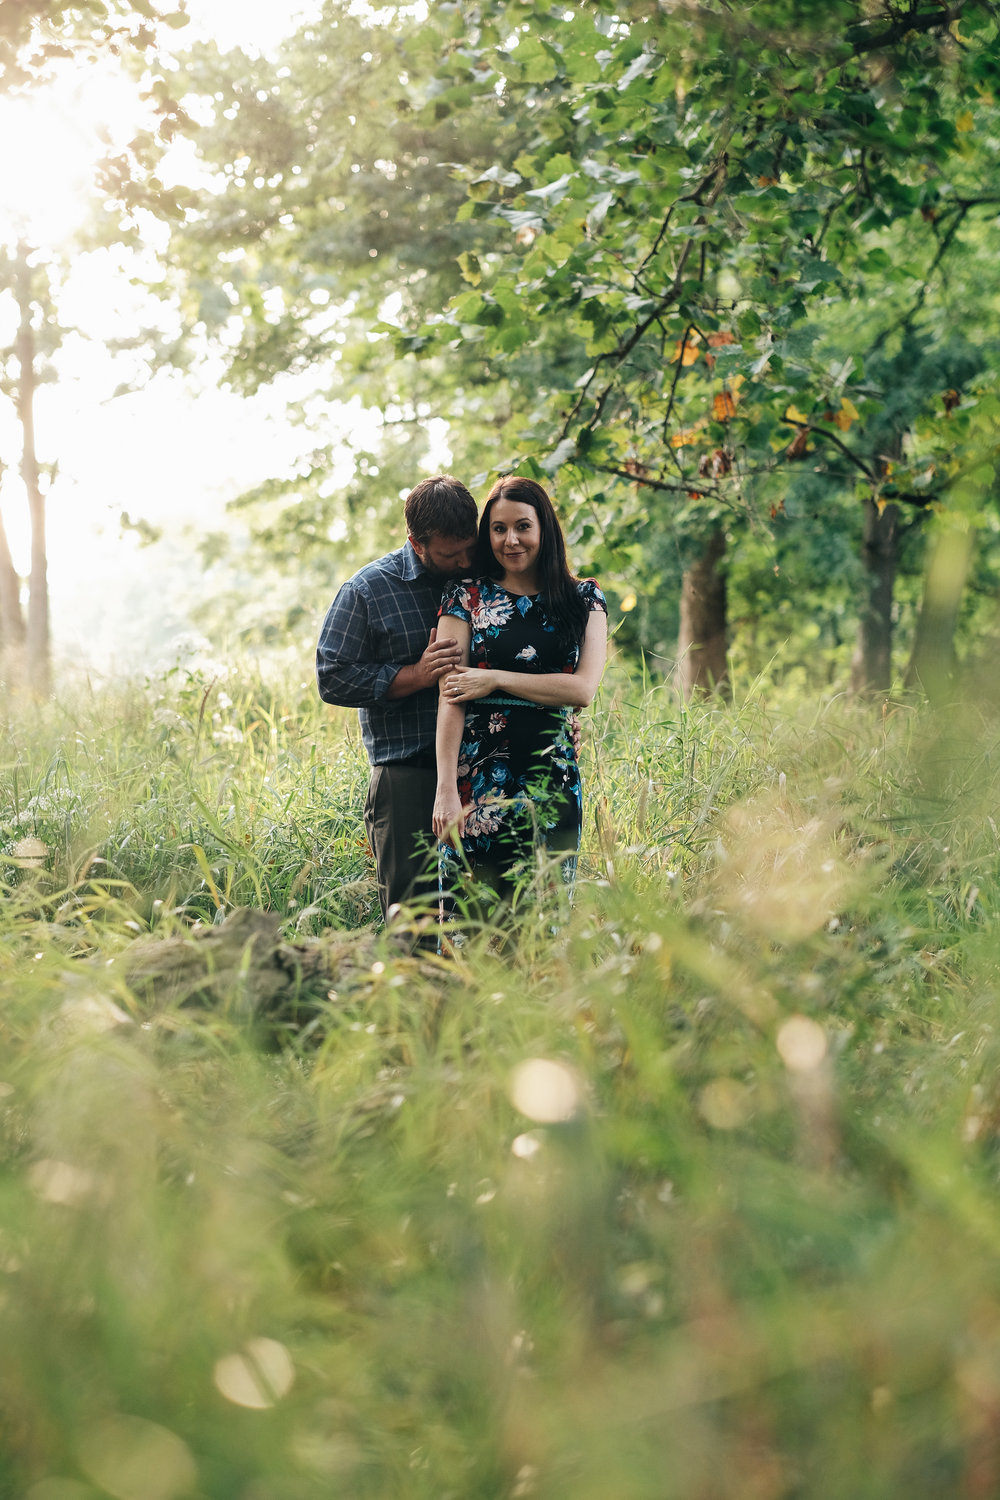 Sunset engagement session at Sidecut Metropark